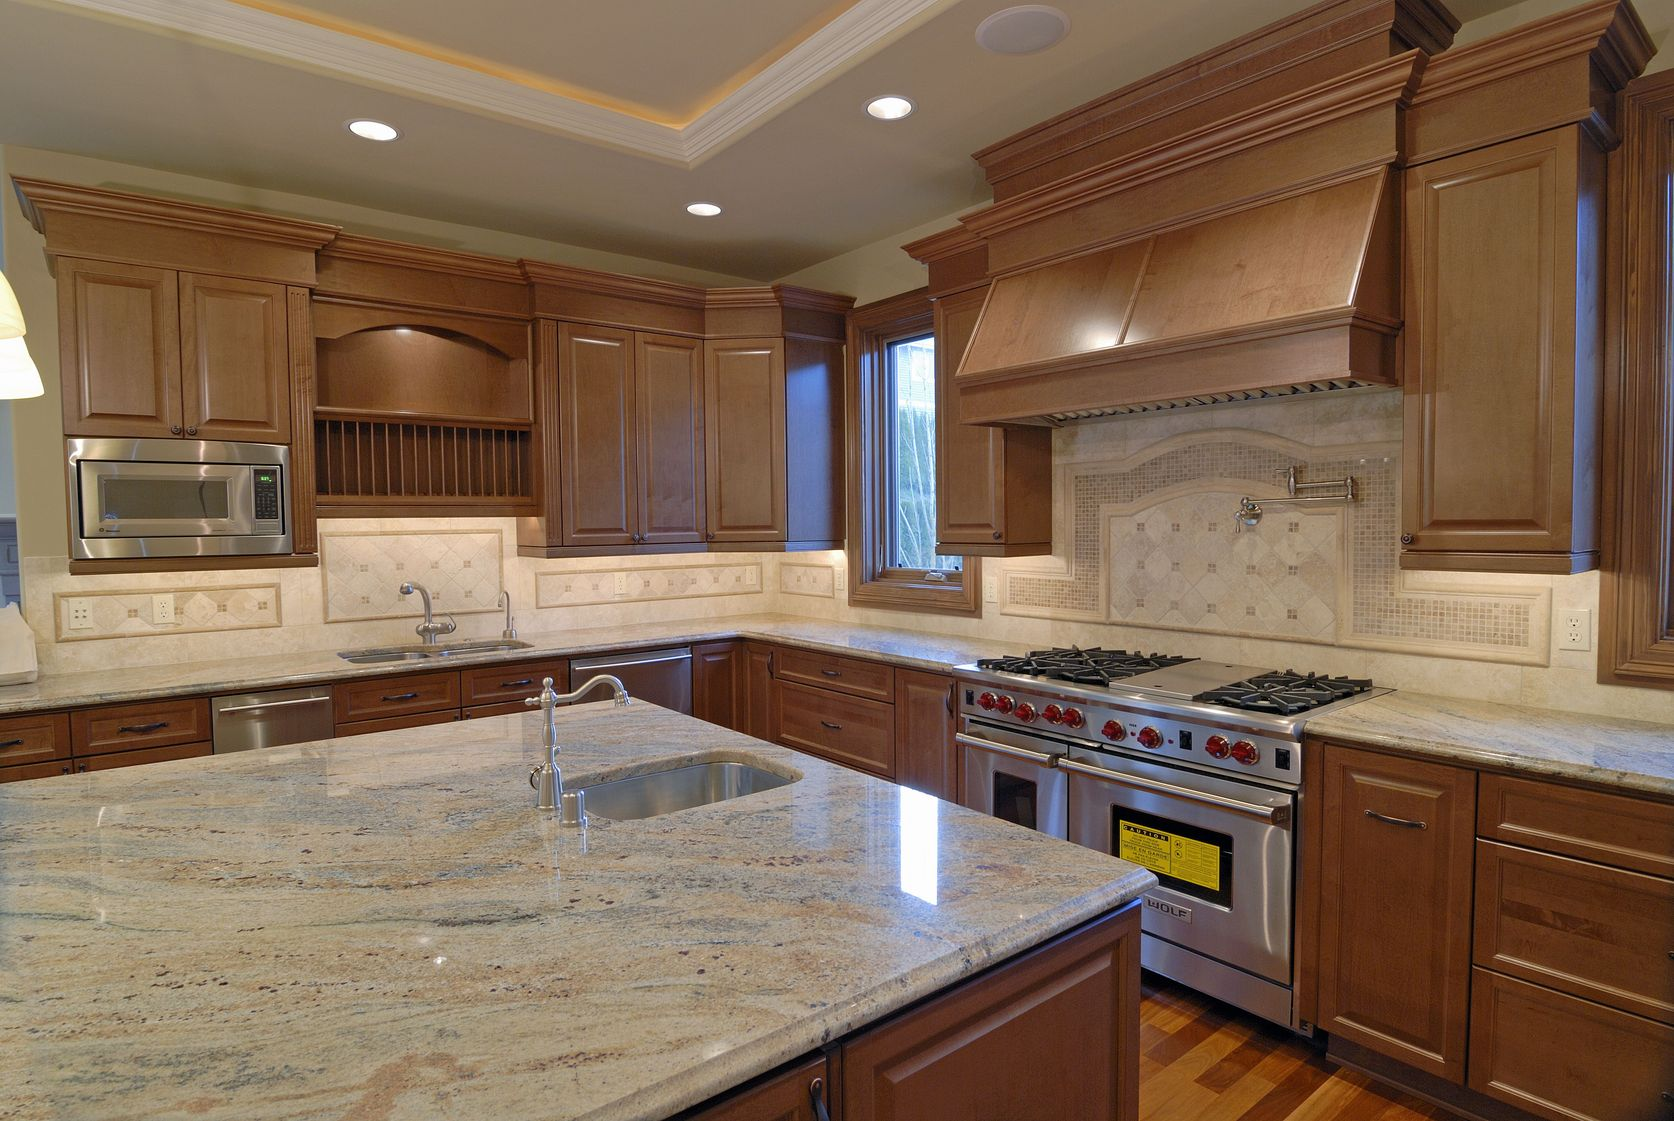 Kitchen remodeling tips how to design a kitchen with for Kitchen renovation styles